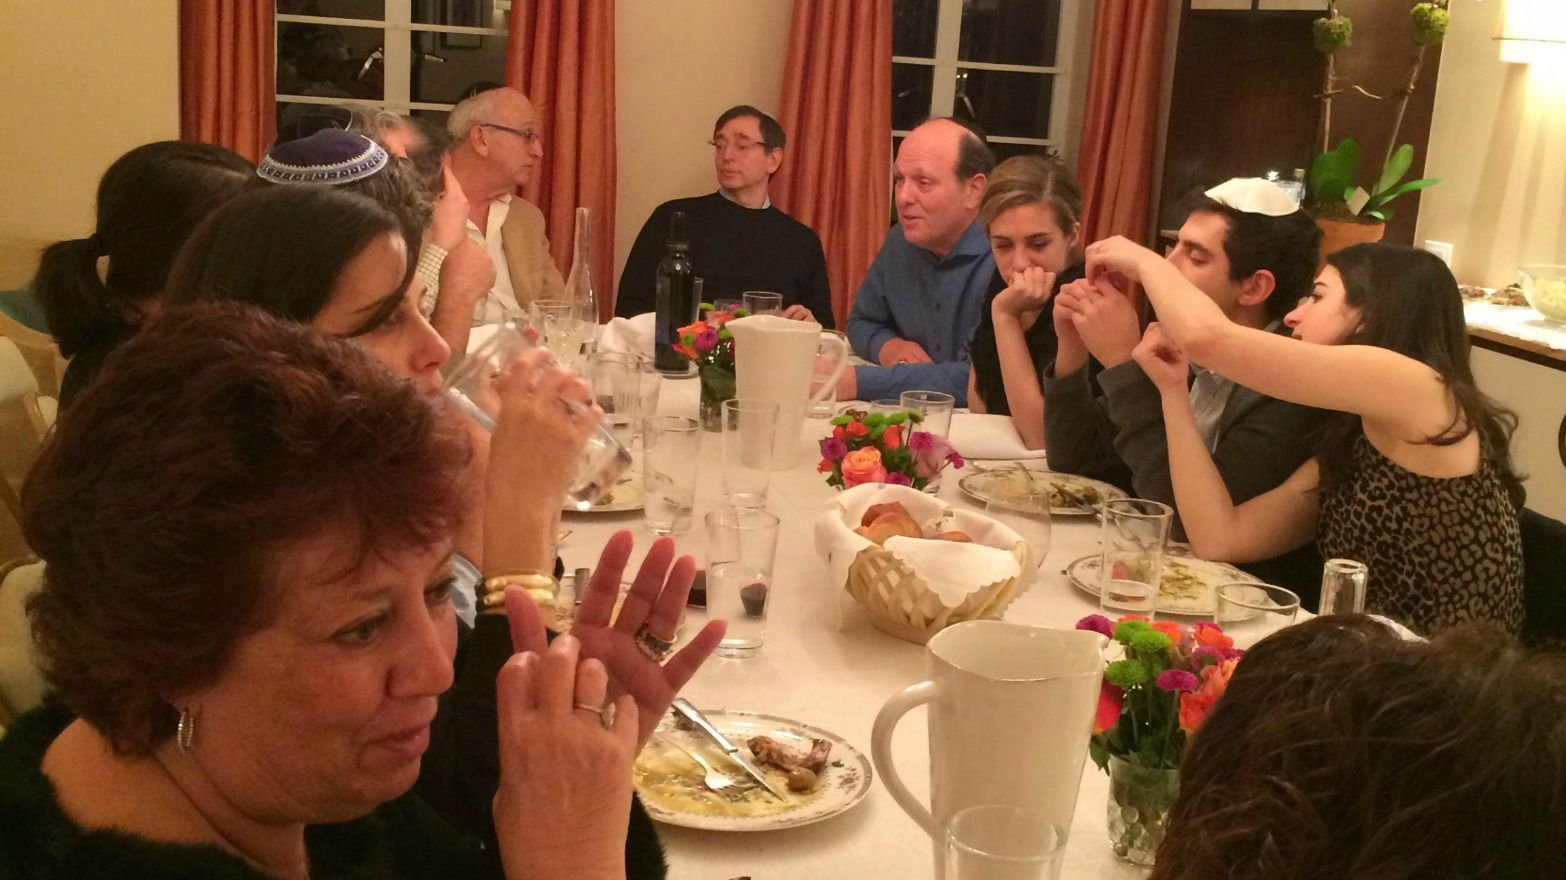 Guests at Rachel Ringler's Shabbat Table enjoyed food and conversation.